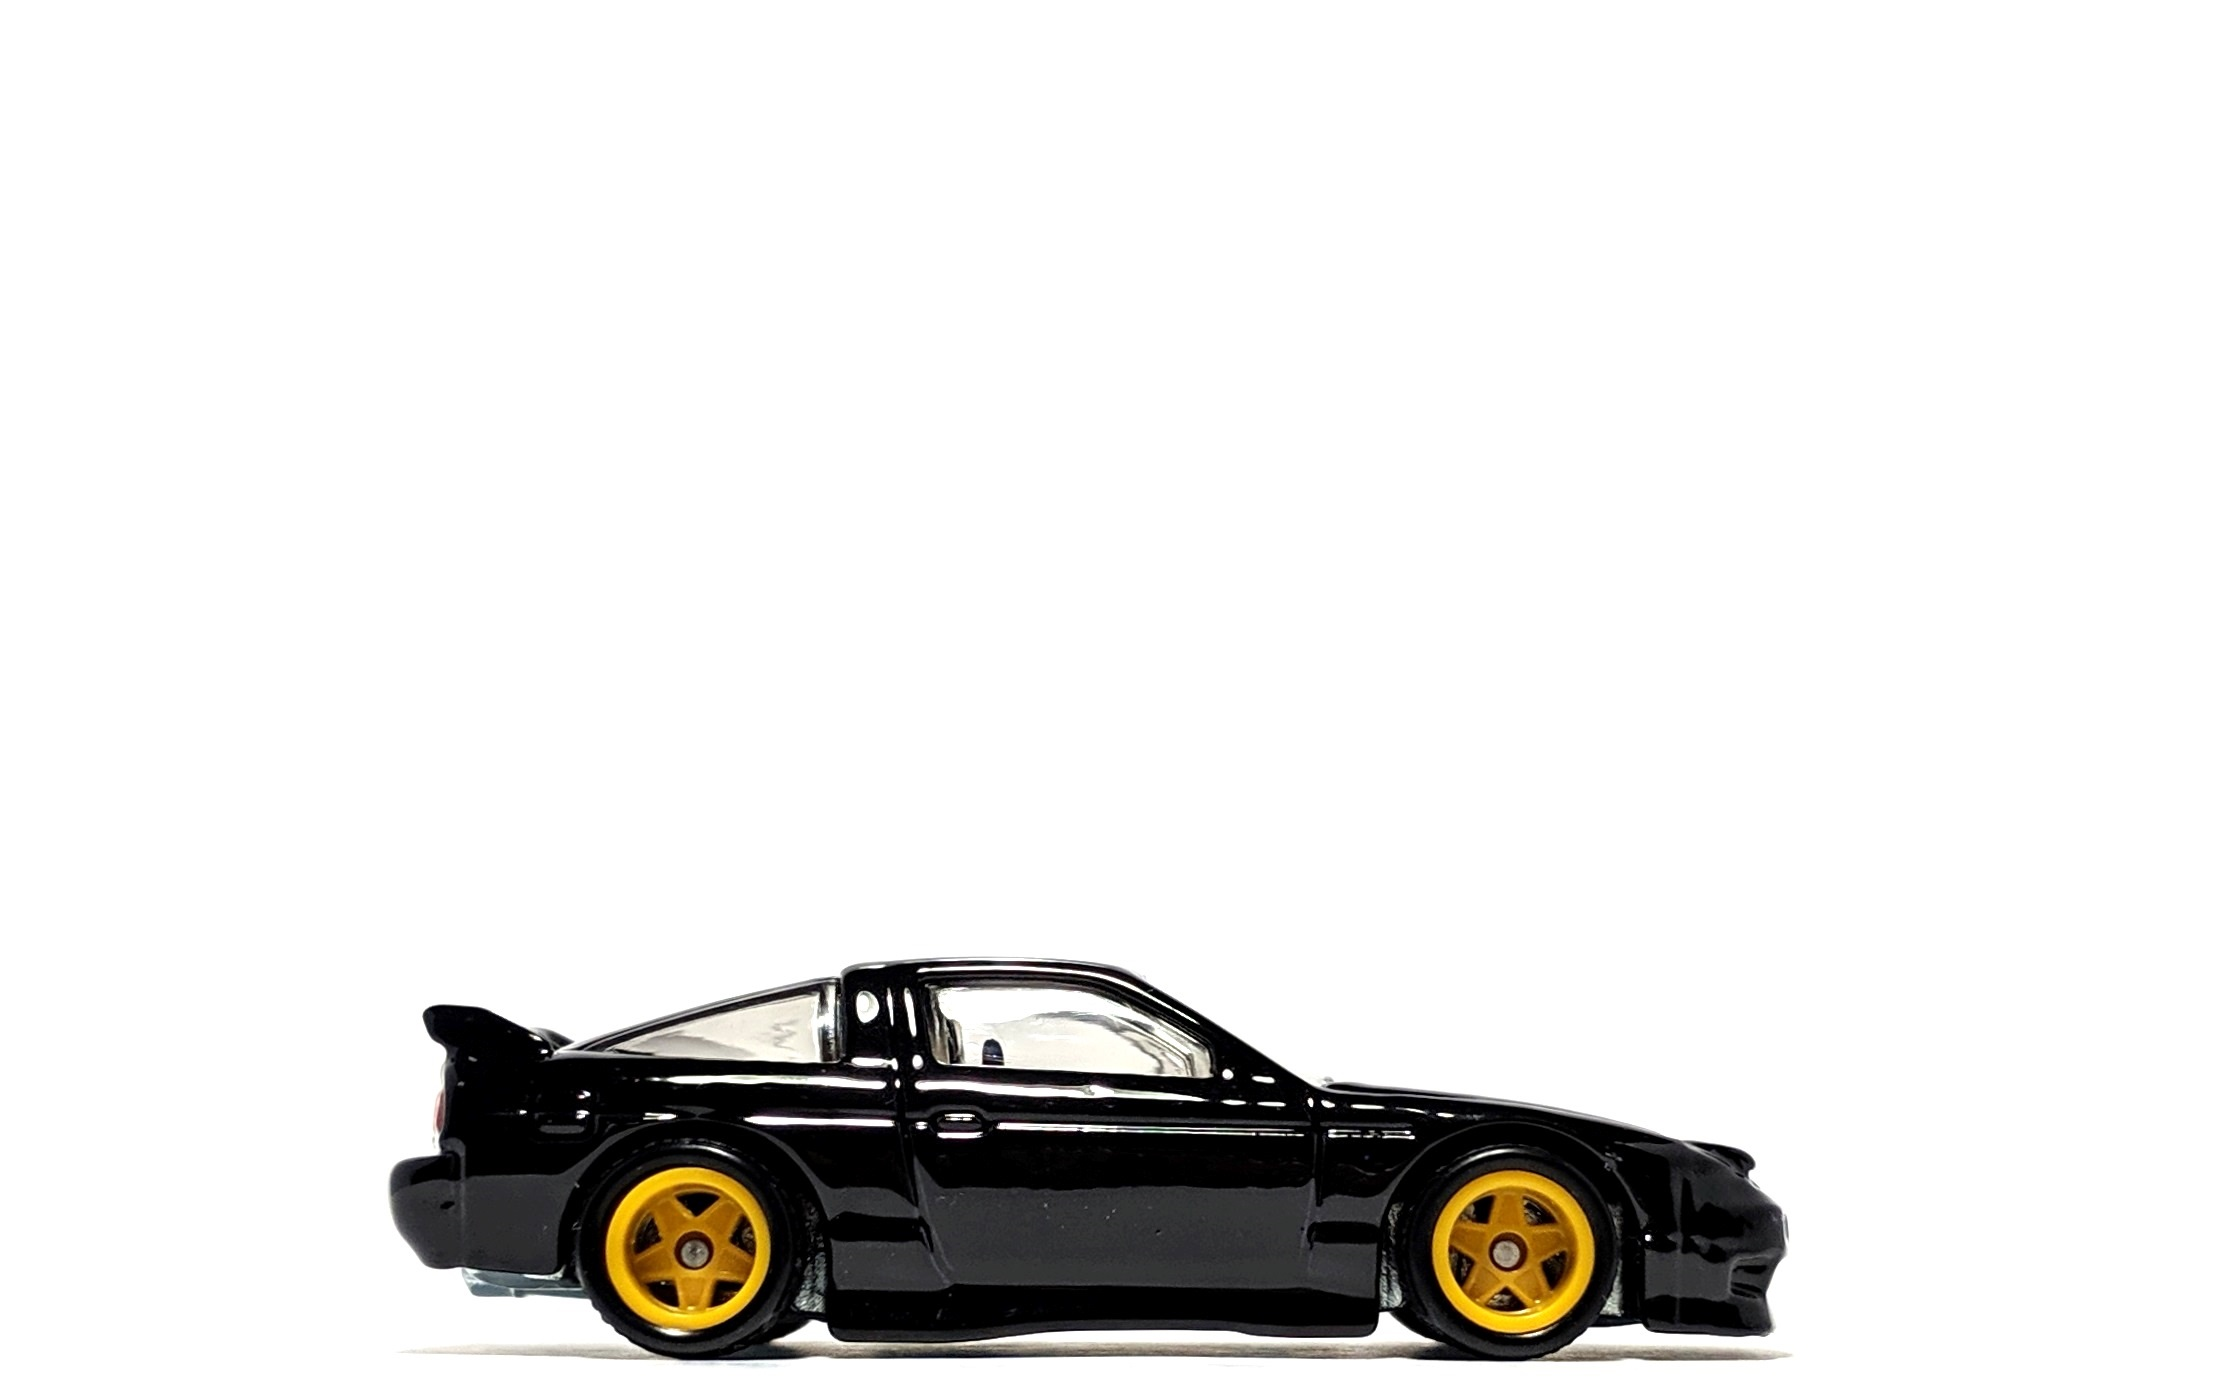 '96 Nissan 180SX Type X, by Hot Wheels (Car Culture: Street Tuners)